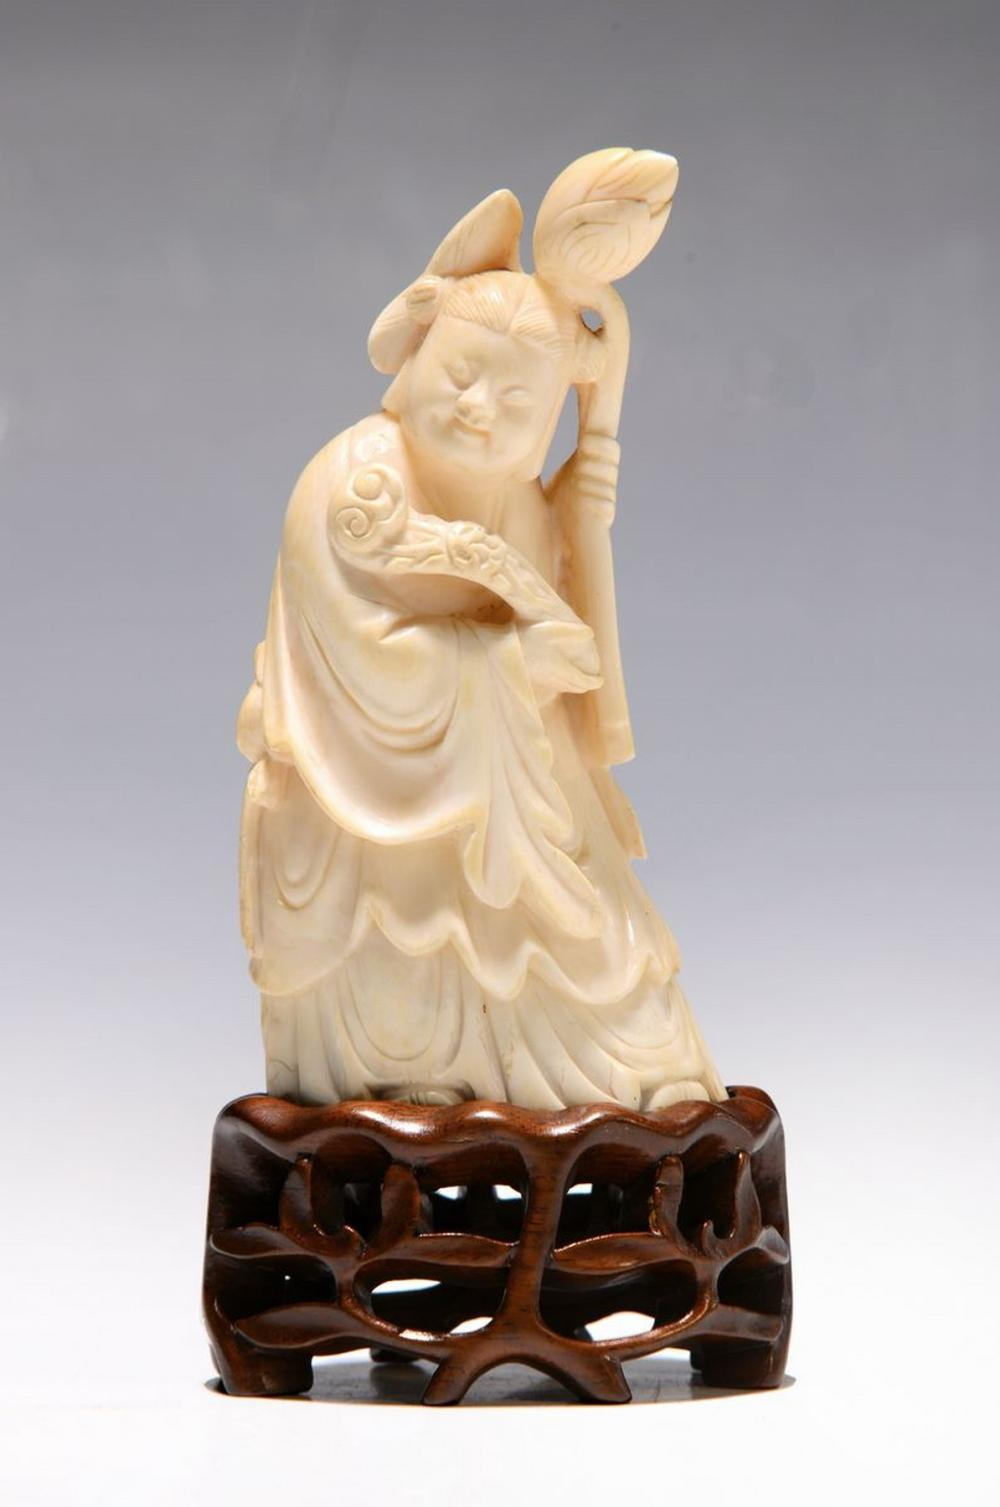 ivory carving, China, around 1900, Guanyin, sculptured